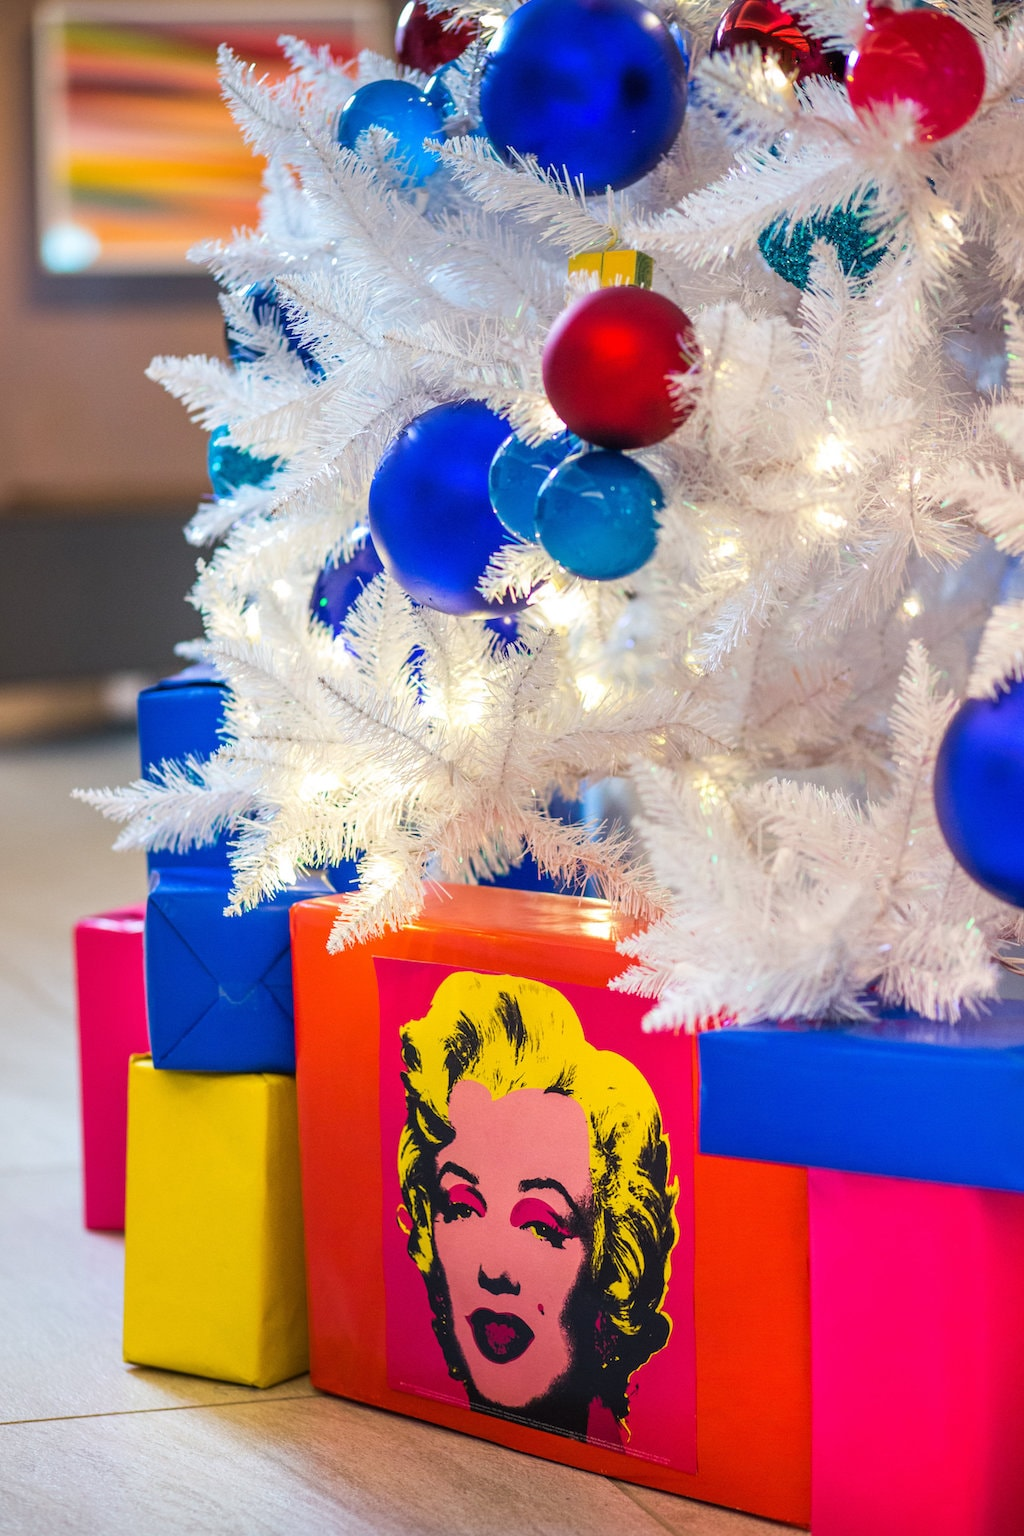 Detail of the Andy Warhol tree | Courtesy of the ART, a hotel.